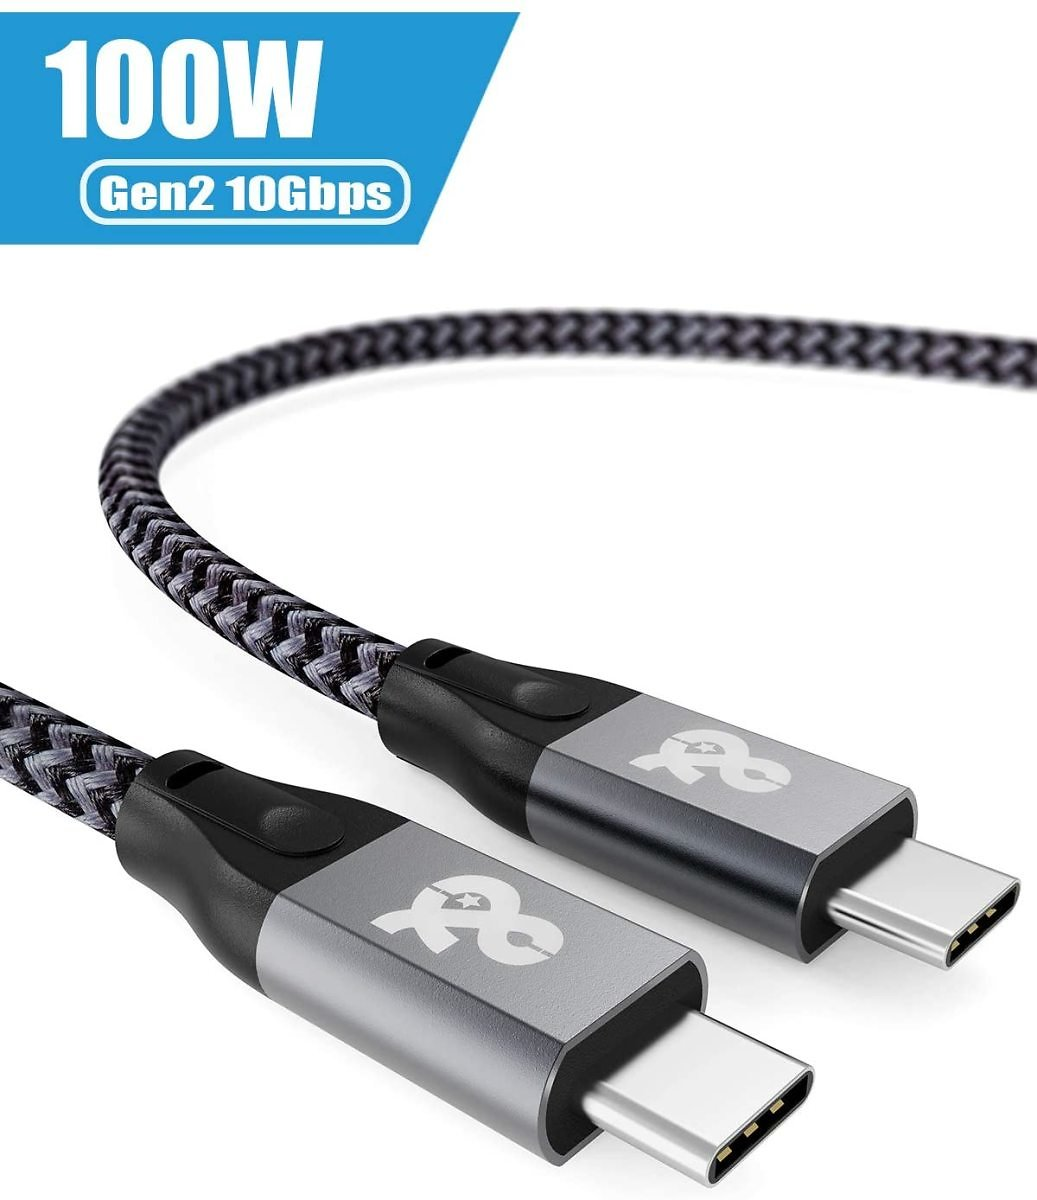 USB C to USB C 3.1 Gen 2 Cable (10 Gbps-3.3Ft) USB C Video Cable